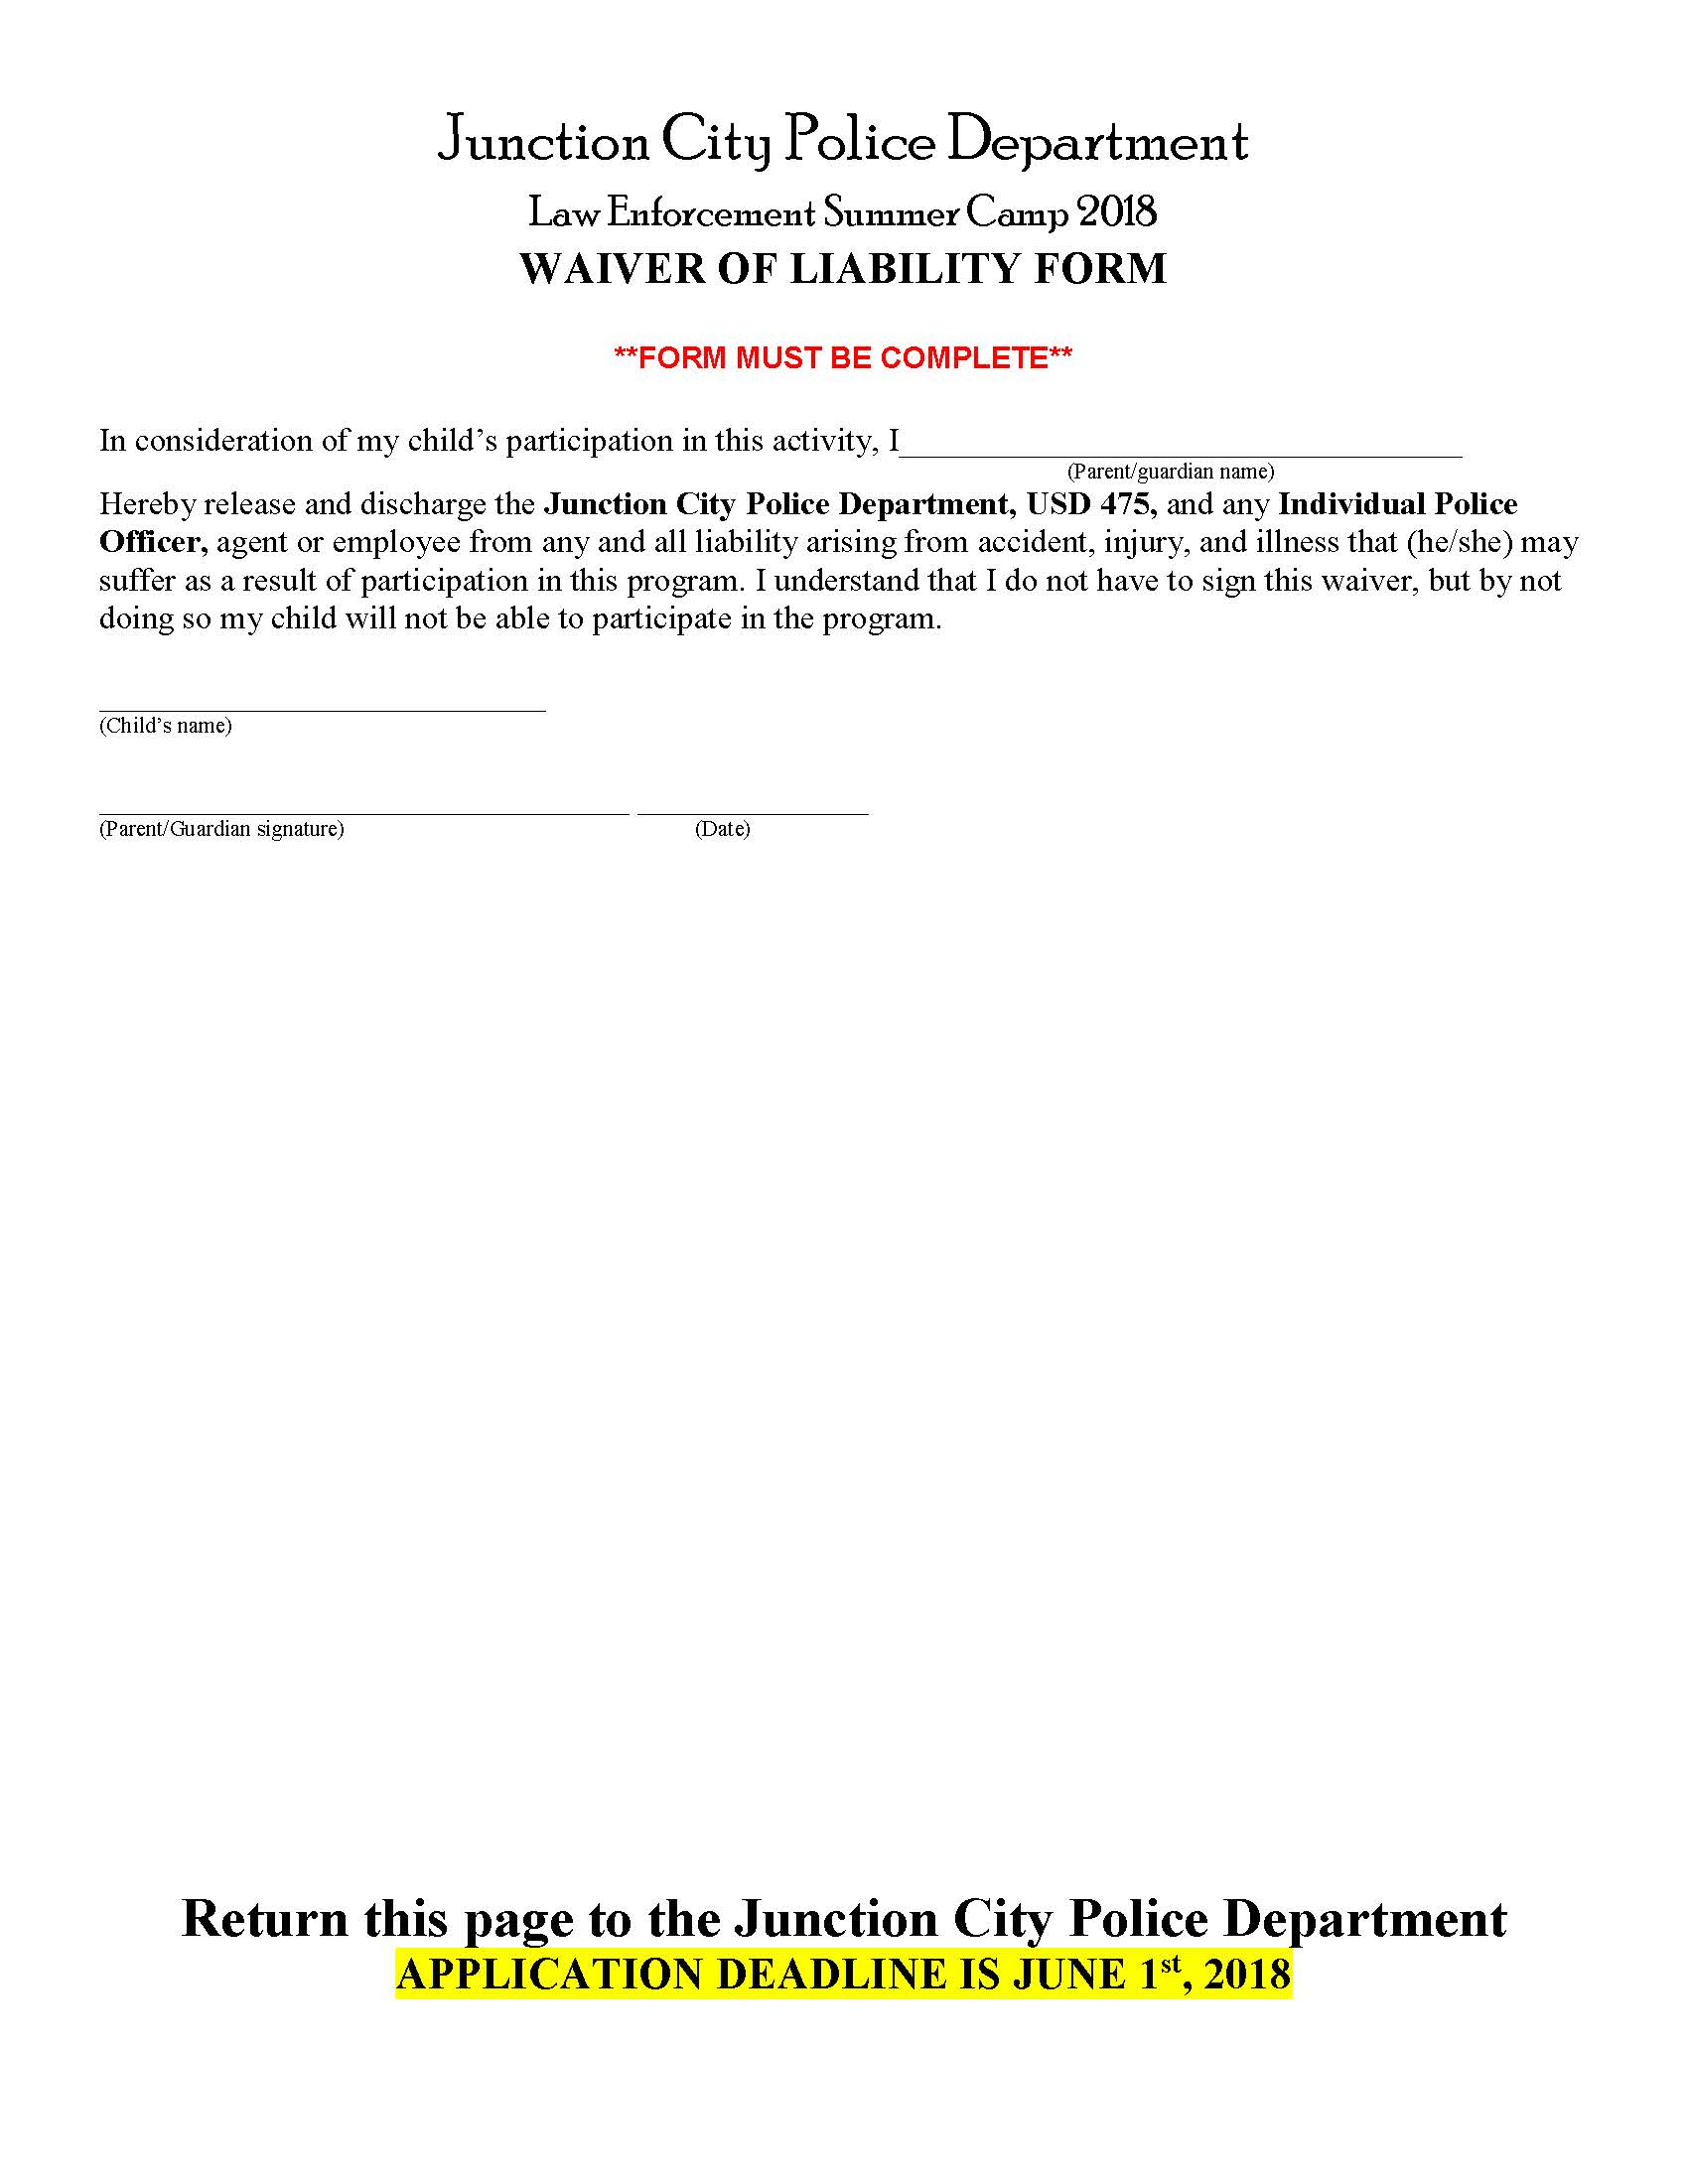 Summer Law Enforcement Camp Page 4